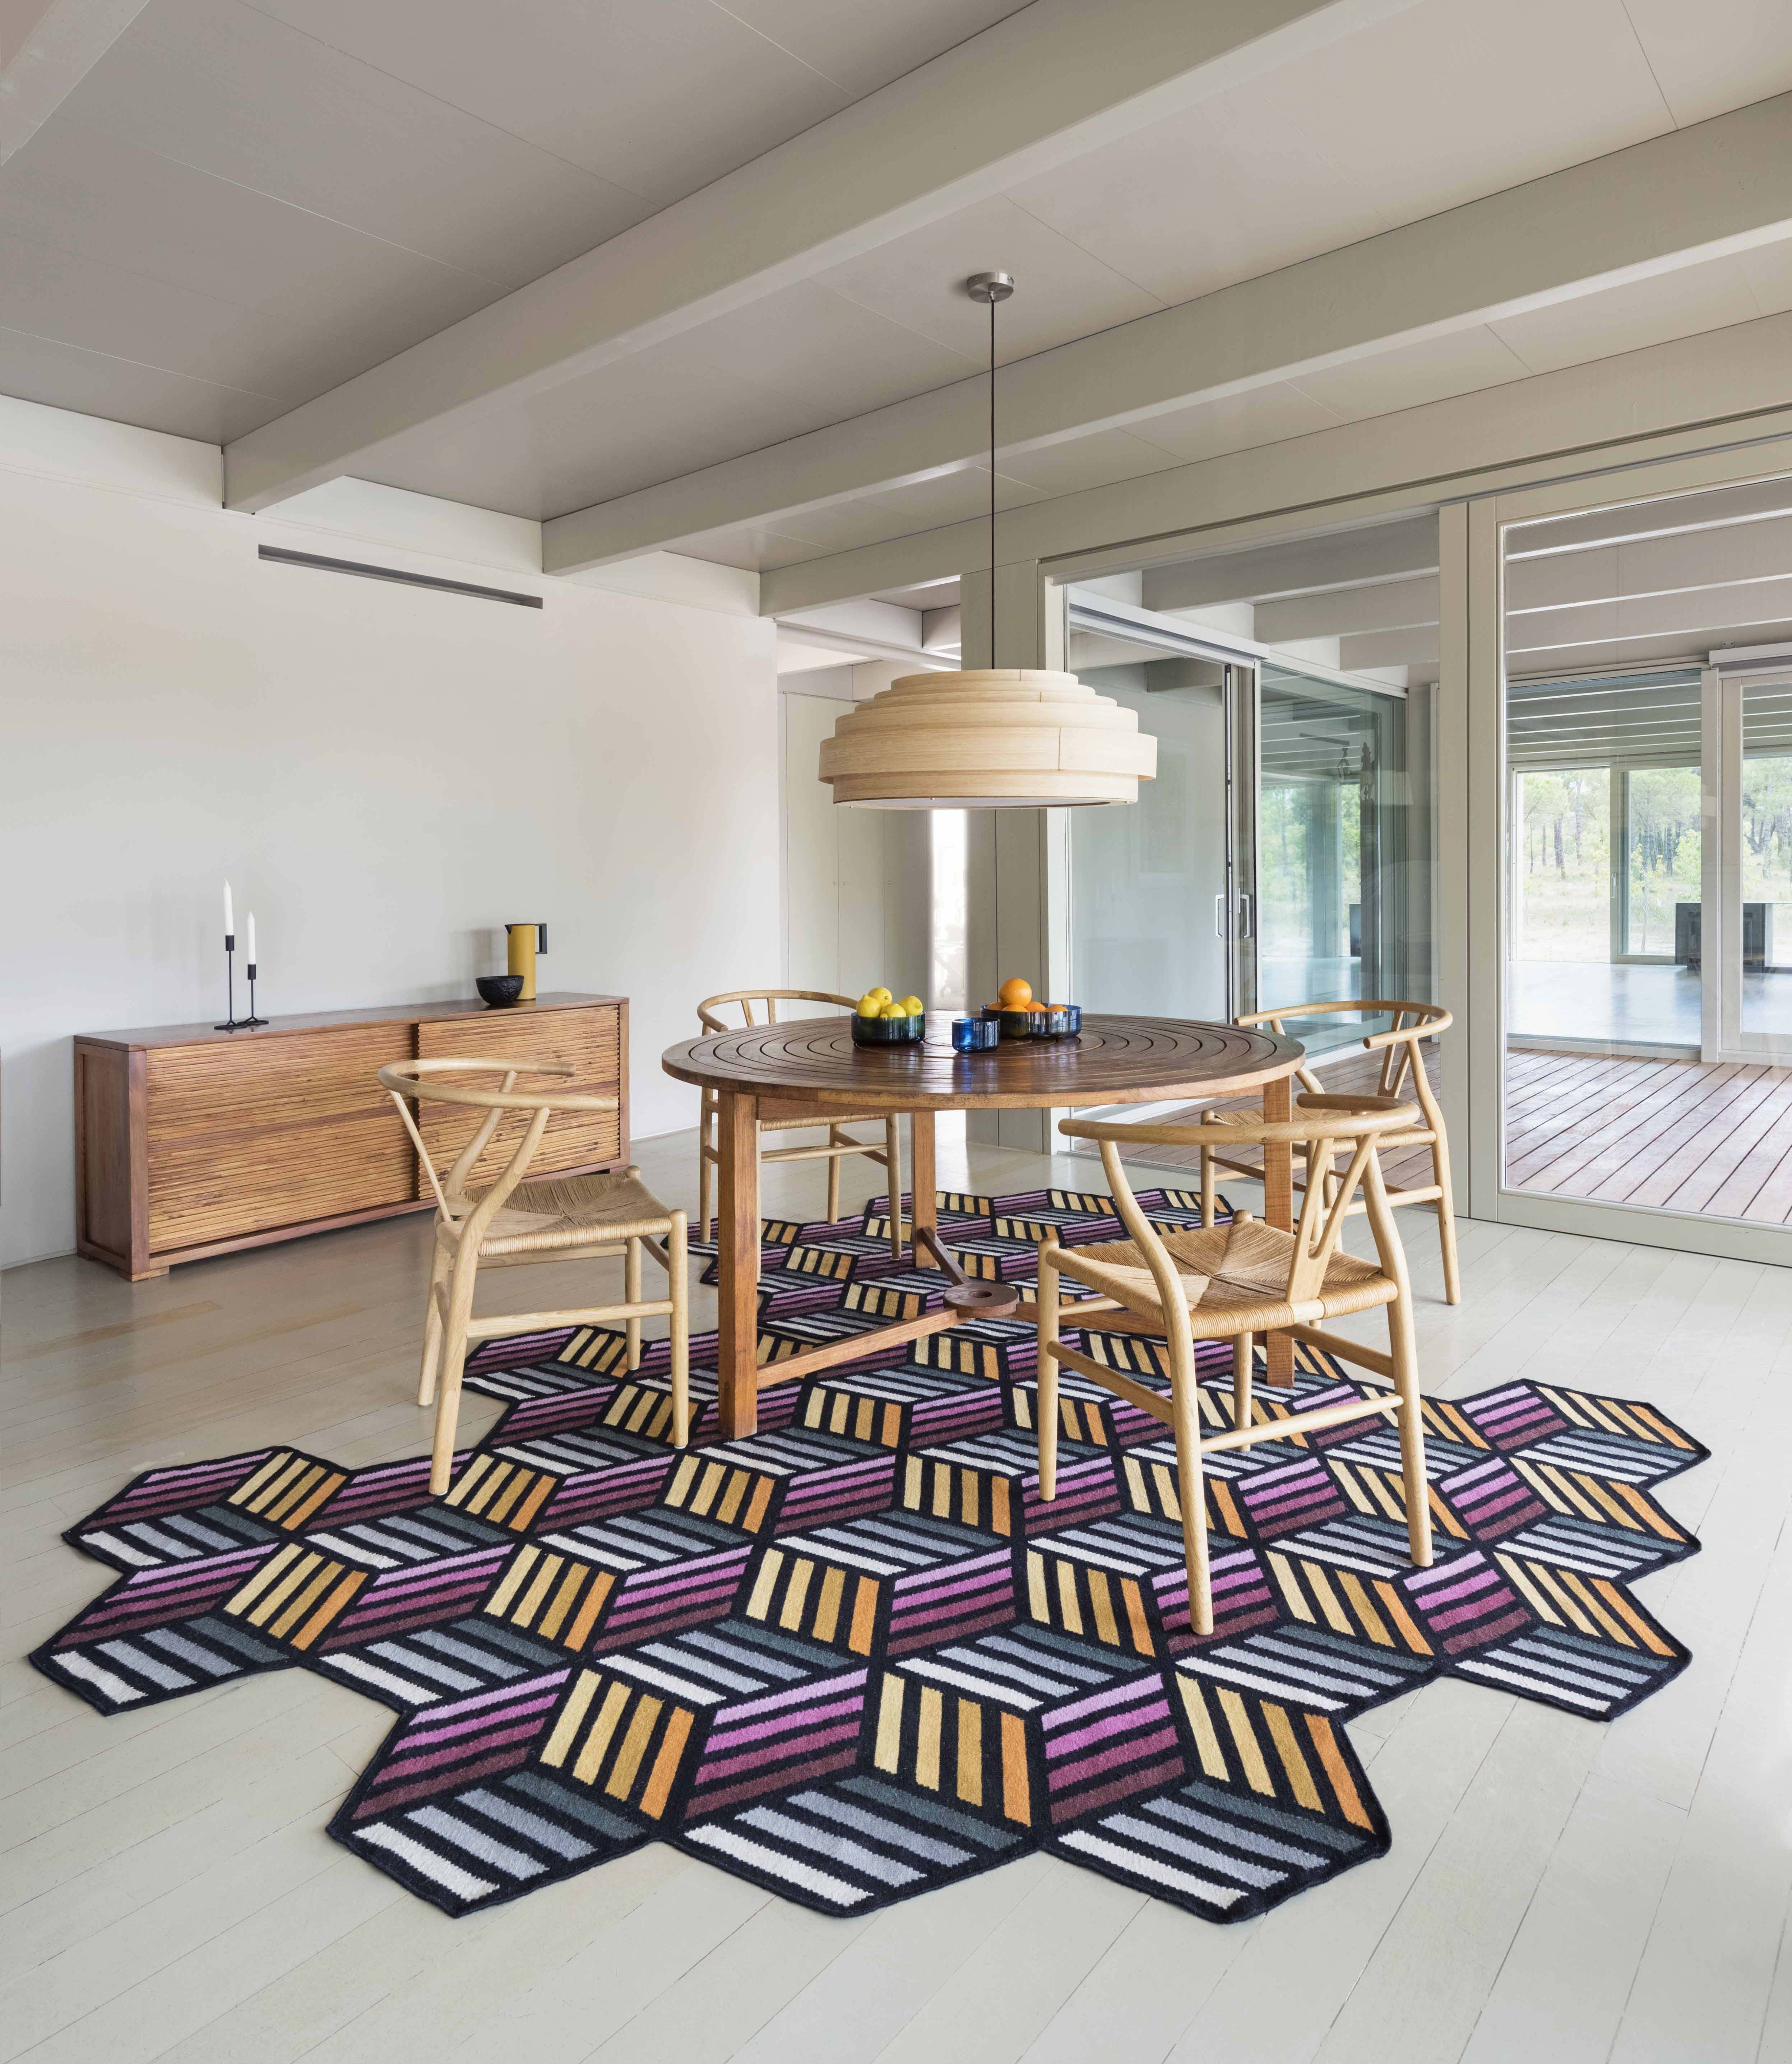 Hexagon By gan, wool rug with geometric shapes design FRONT, parquet  Collection